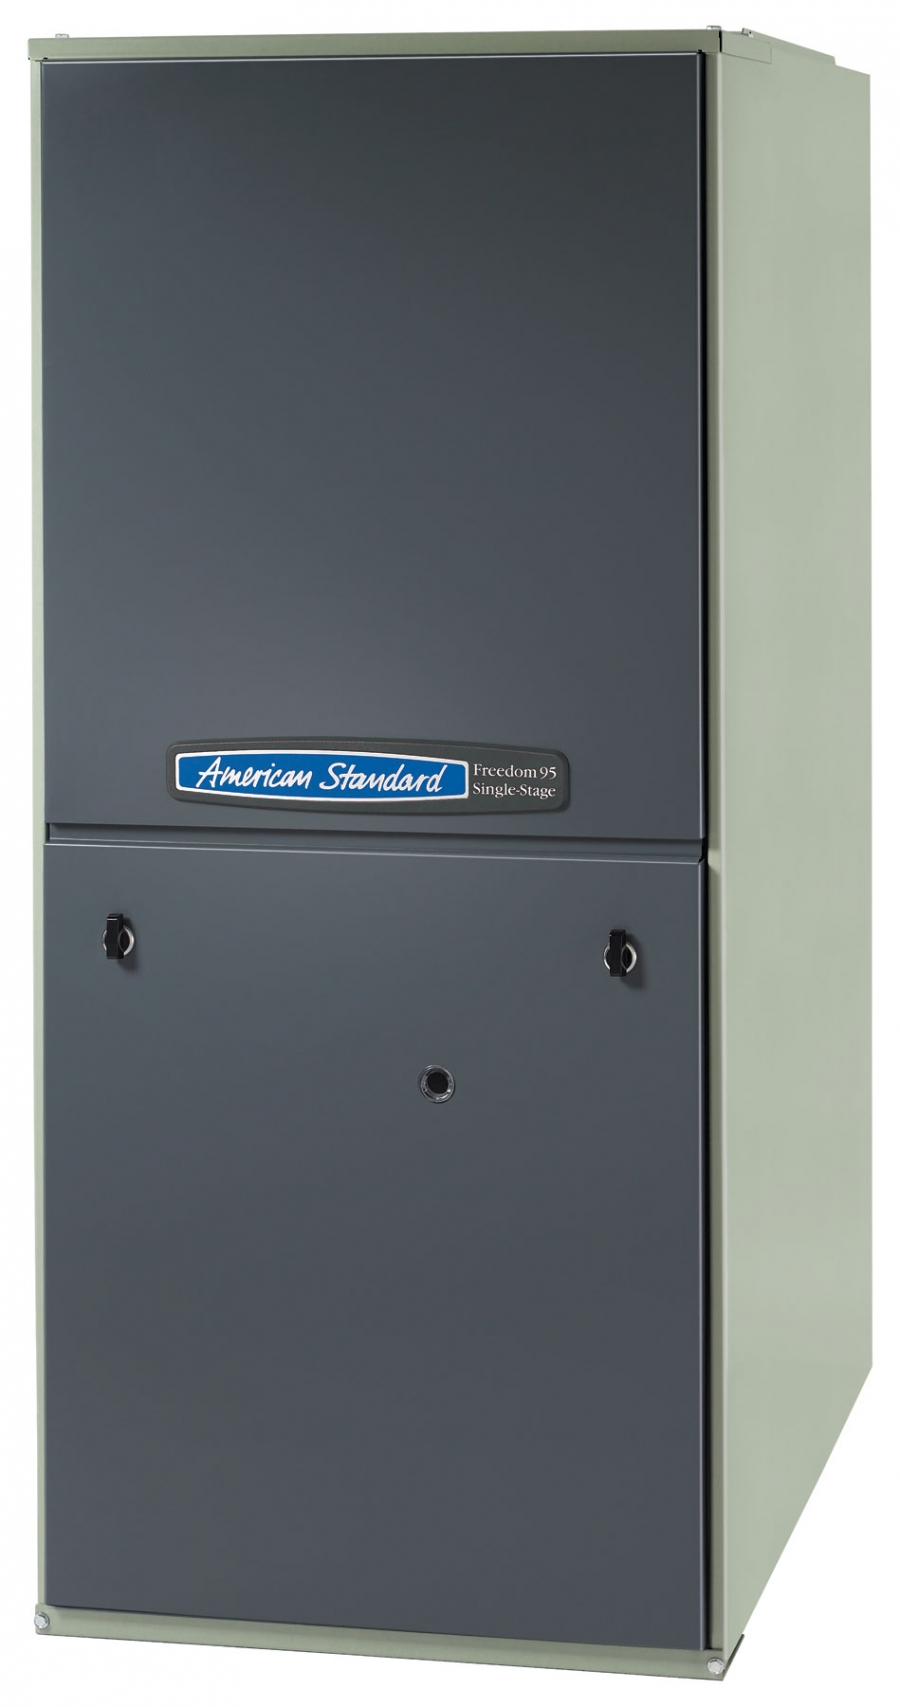 Freedom 95 Variable Speed Single Stage Gas Furnace